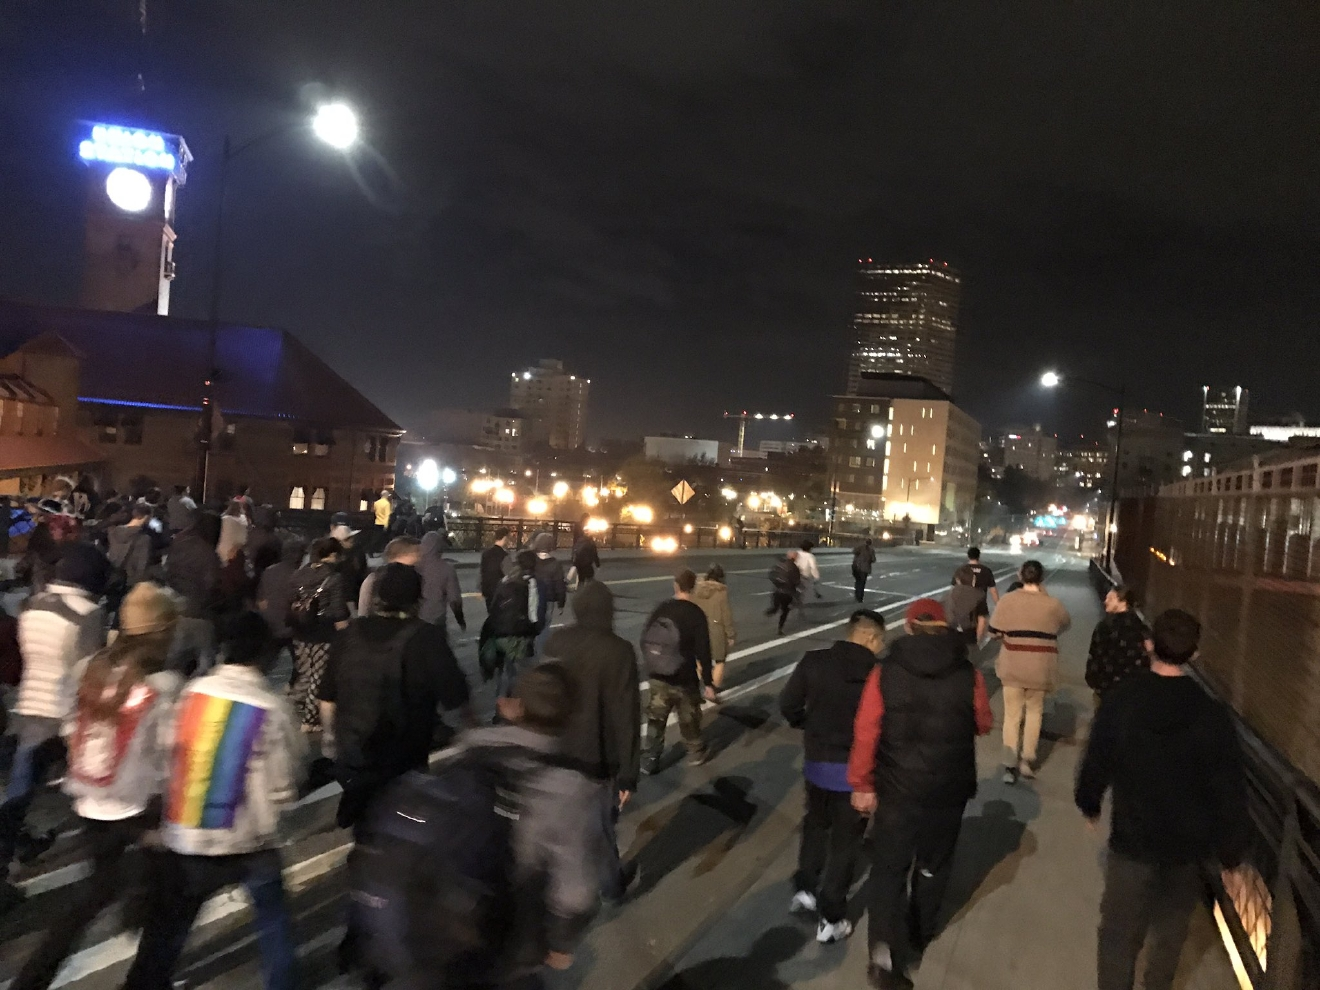 Protesters head to downtown Portland over Broadway Bridge (Photo by KATU's Tristan Fortsch)